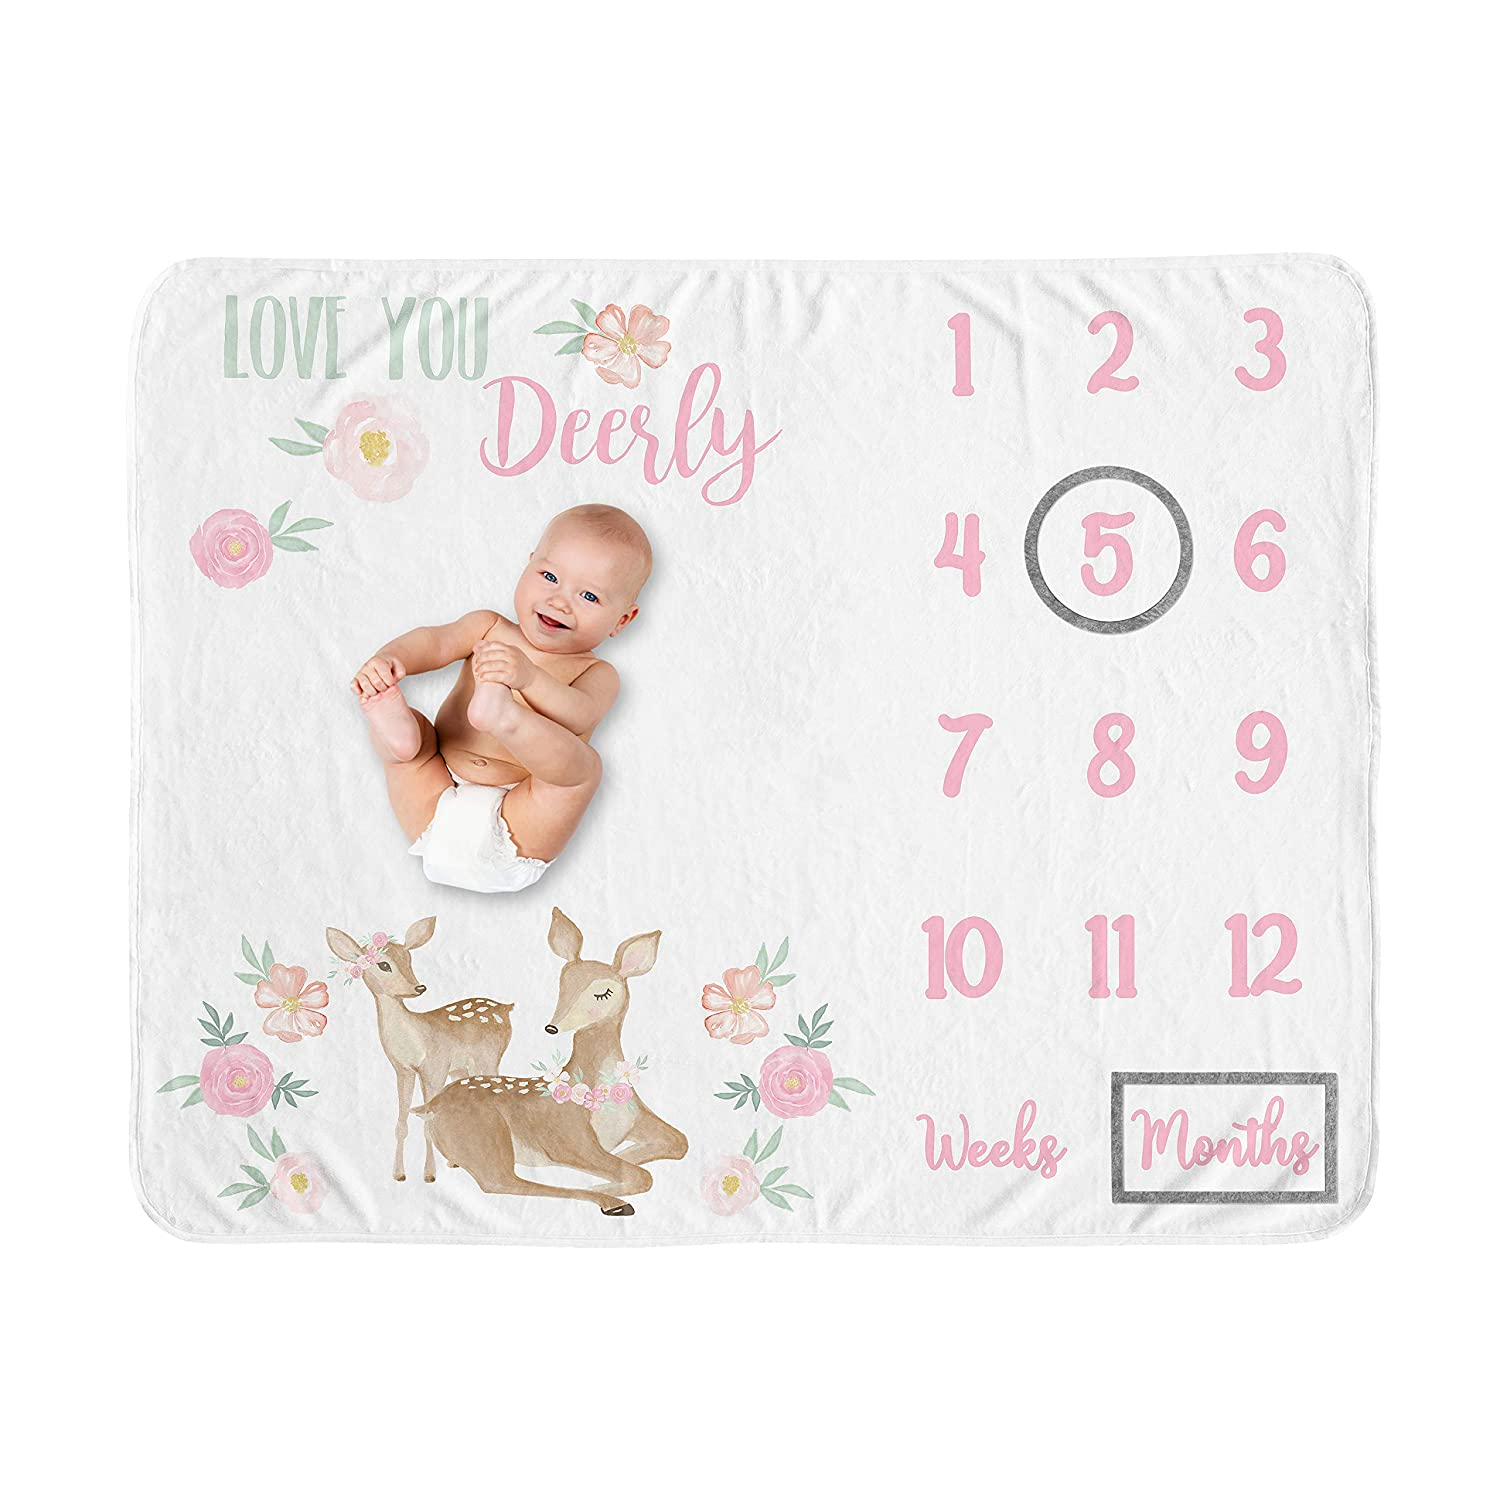 Sweet Jojo Designs Woodland Deer Girl Milestone Blanket Monthly Newborn First Year Growth Mat Baby Shower Memory Keepsake Gift Picture - Blush Pink Mint Green Boho Watercolor Forest Love You Deerly